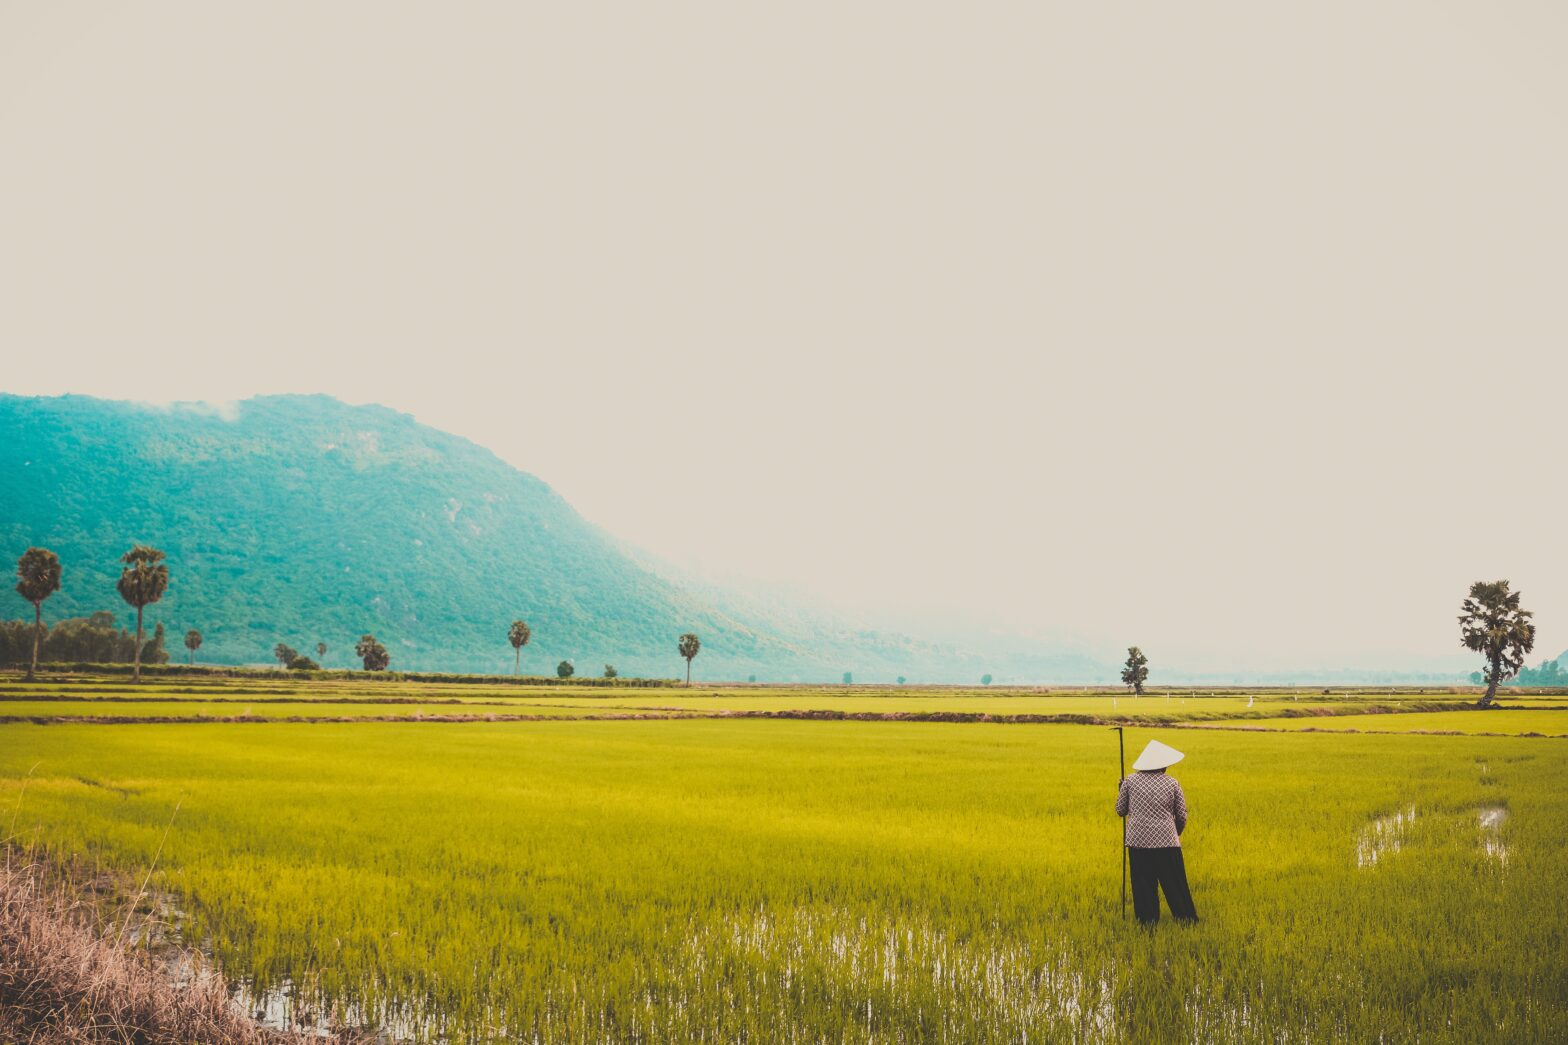 Korean Rice Field. Photo by Loifotos for Pexels